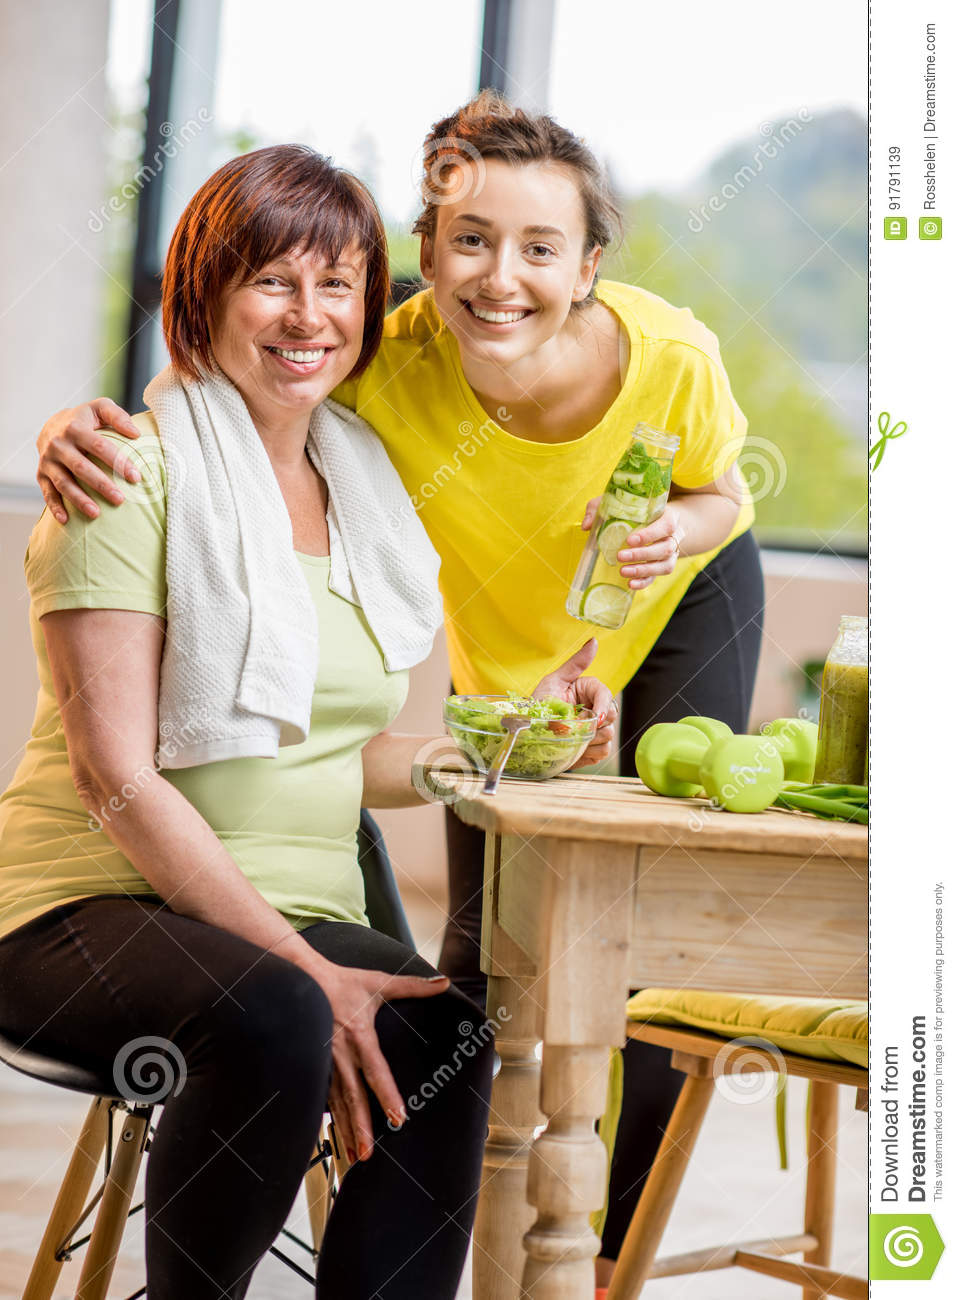 Young And Older Women Exercising With Dumbbells And Eating Healthy Food Indoors On The Window Background